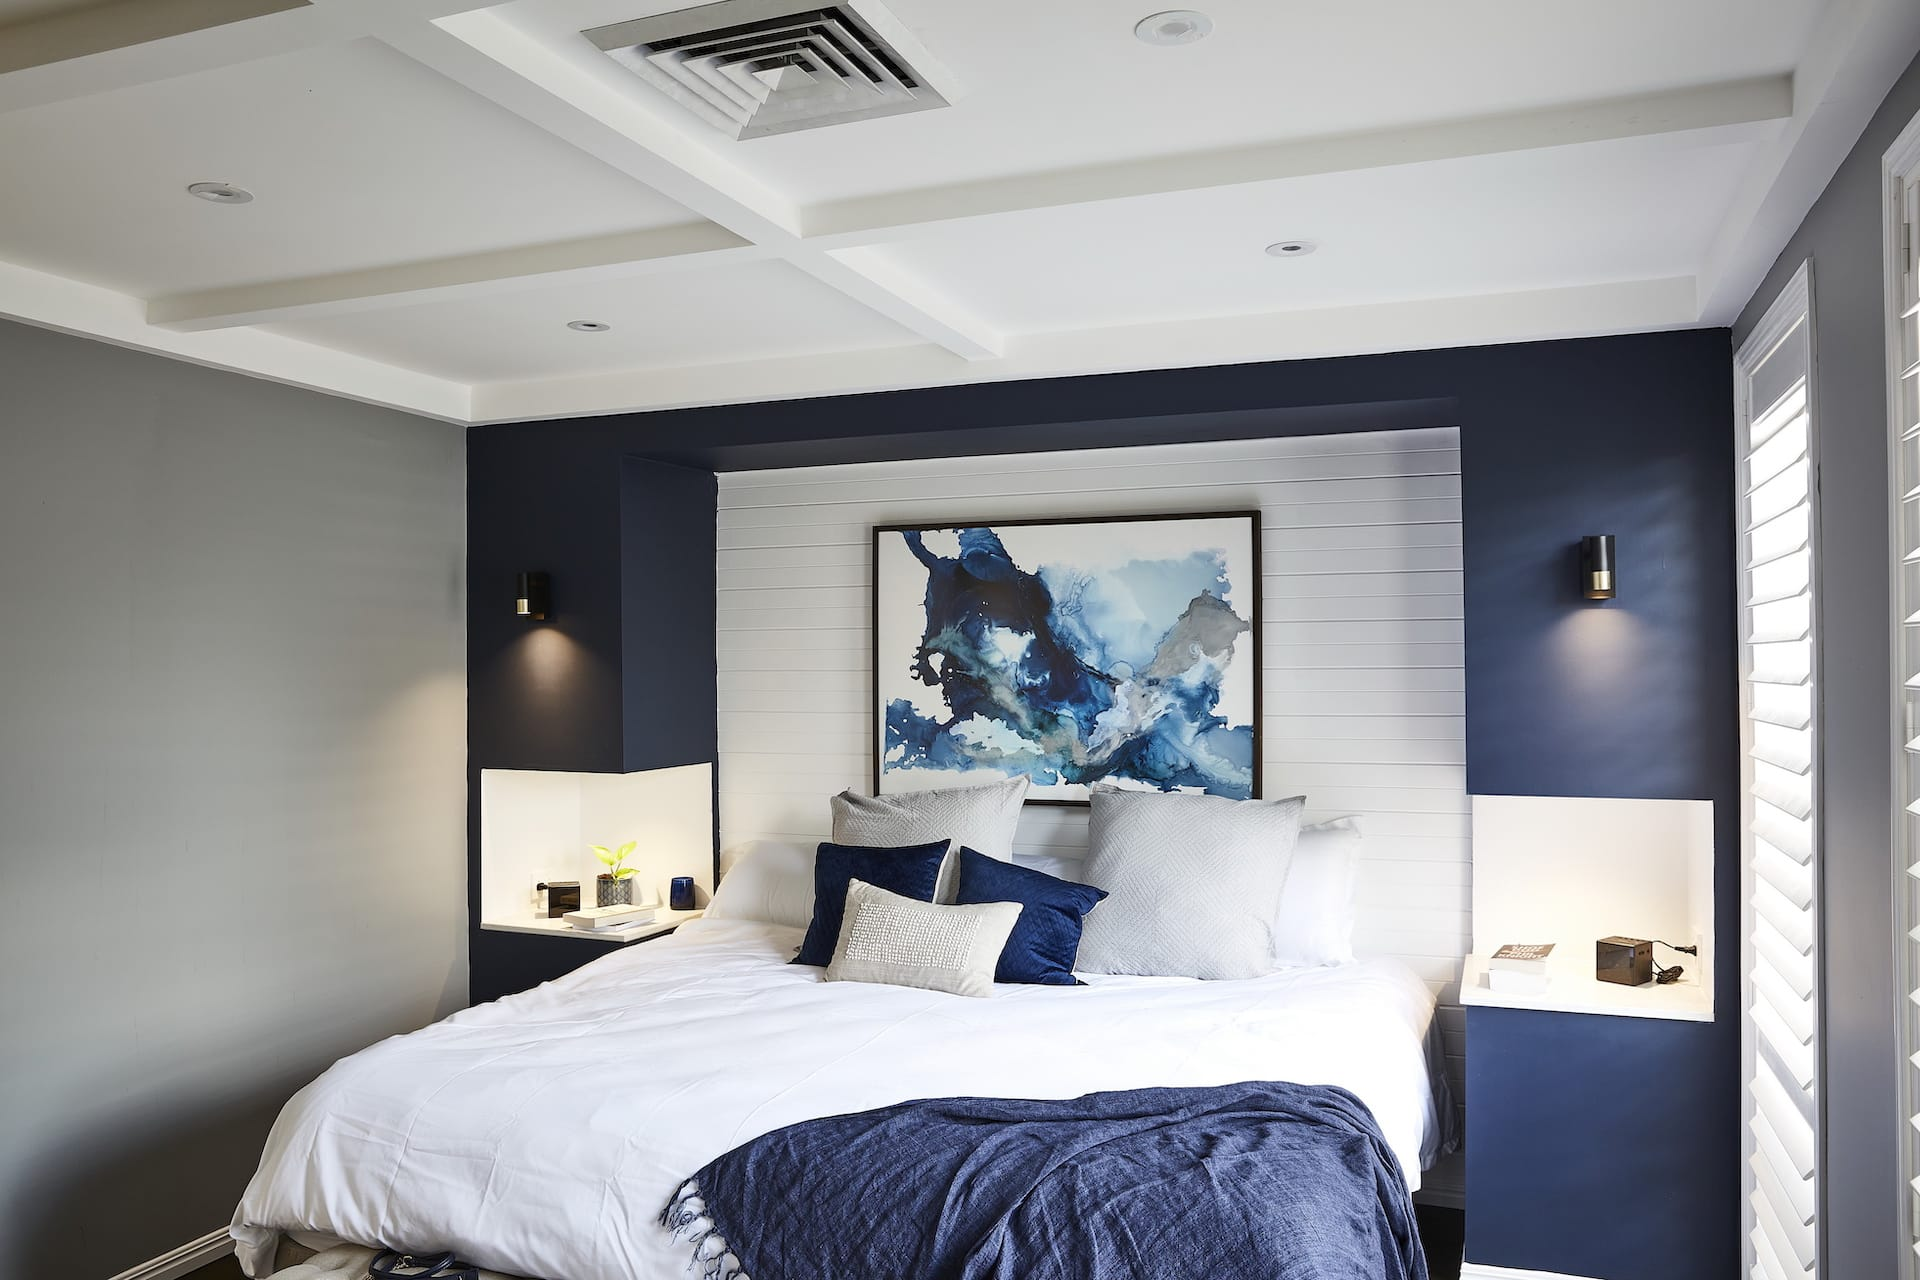 house rules 2020 lenore bedroom with navy blue feature wall